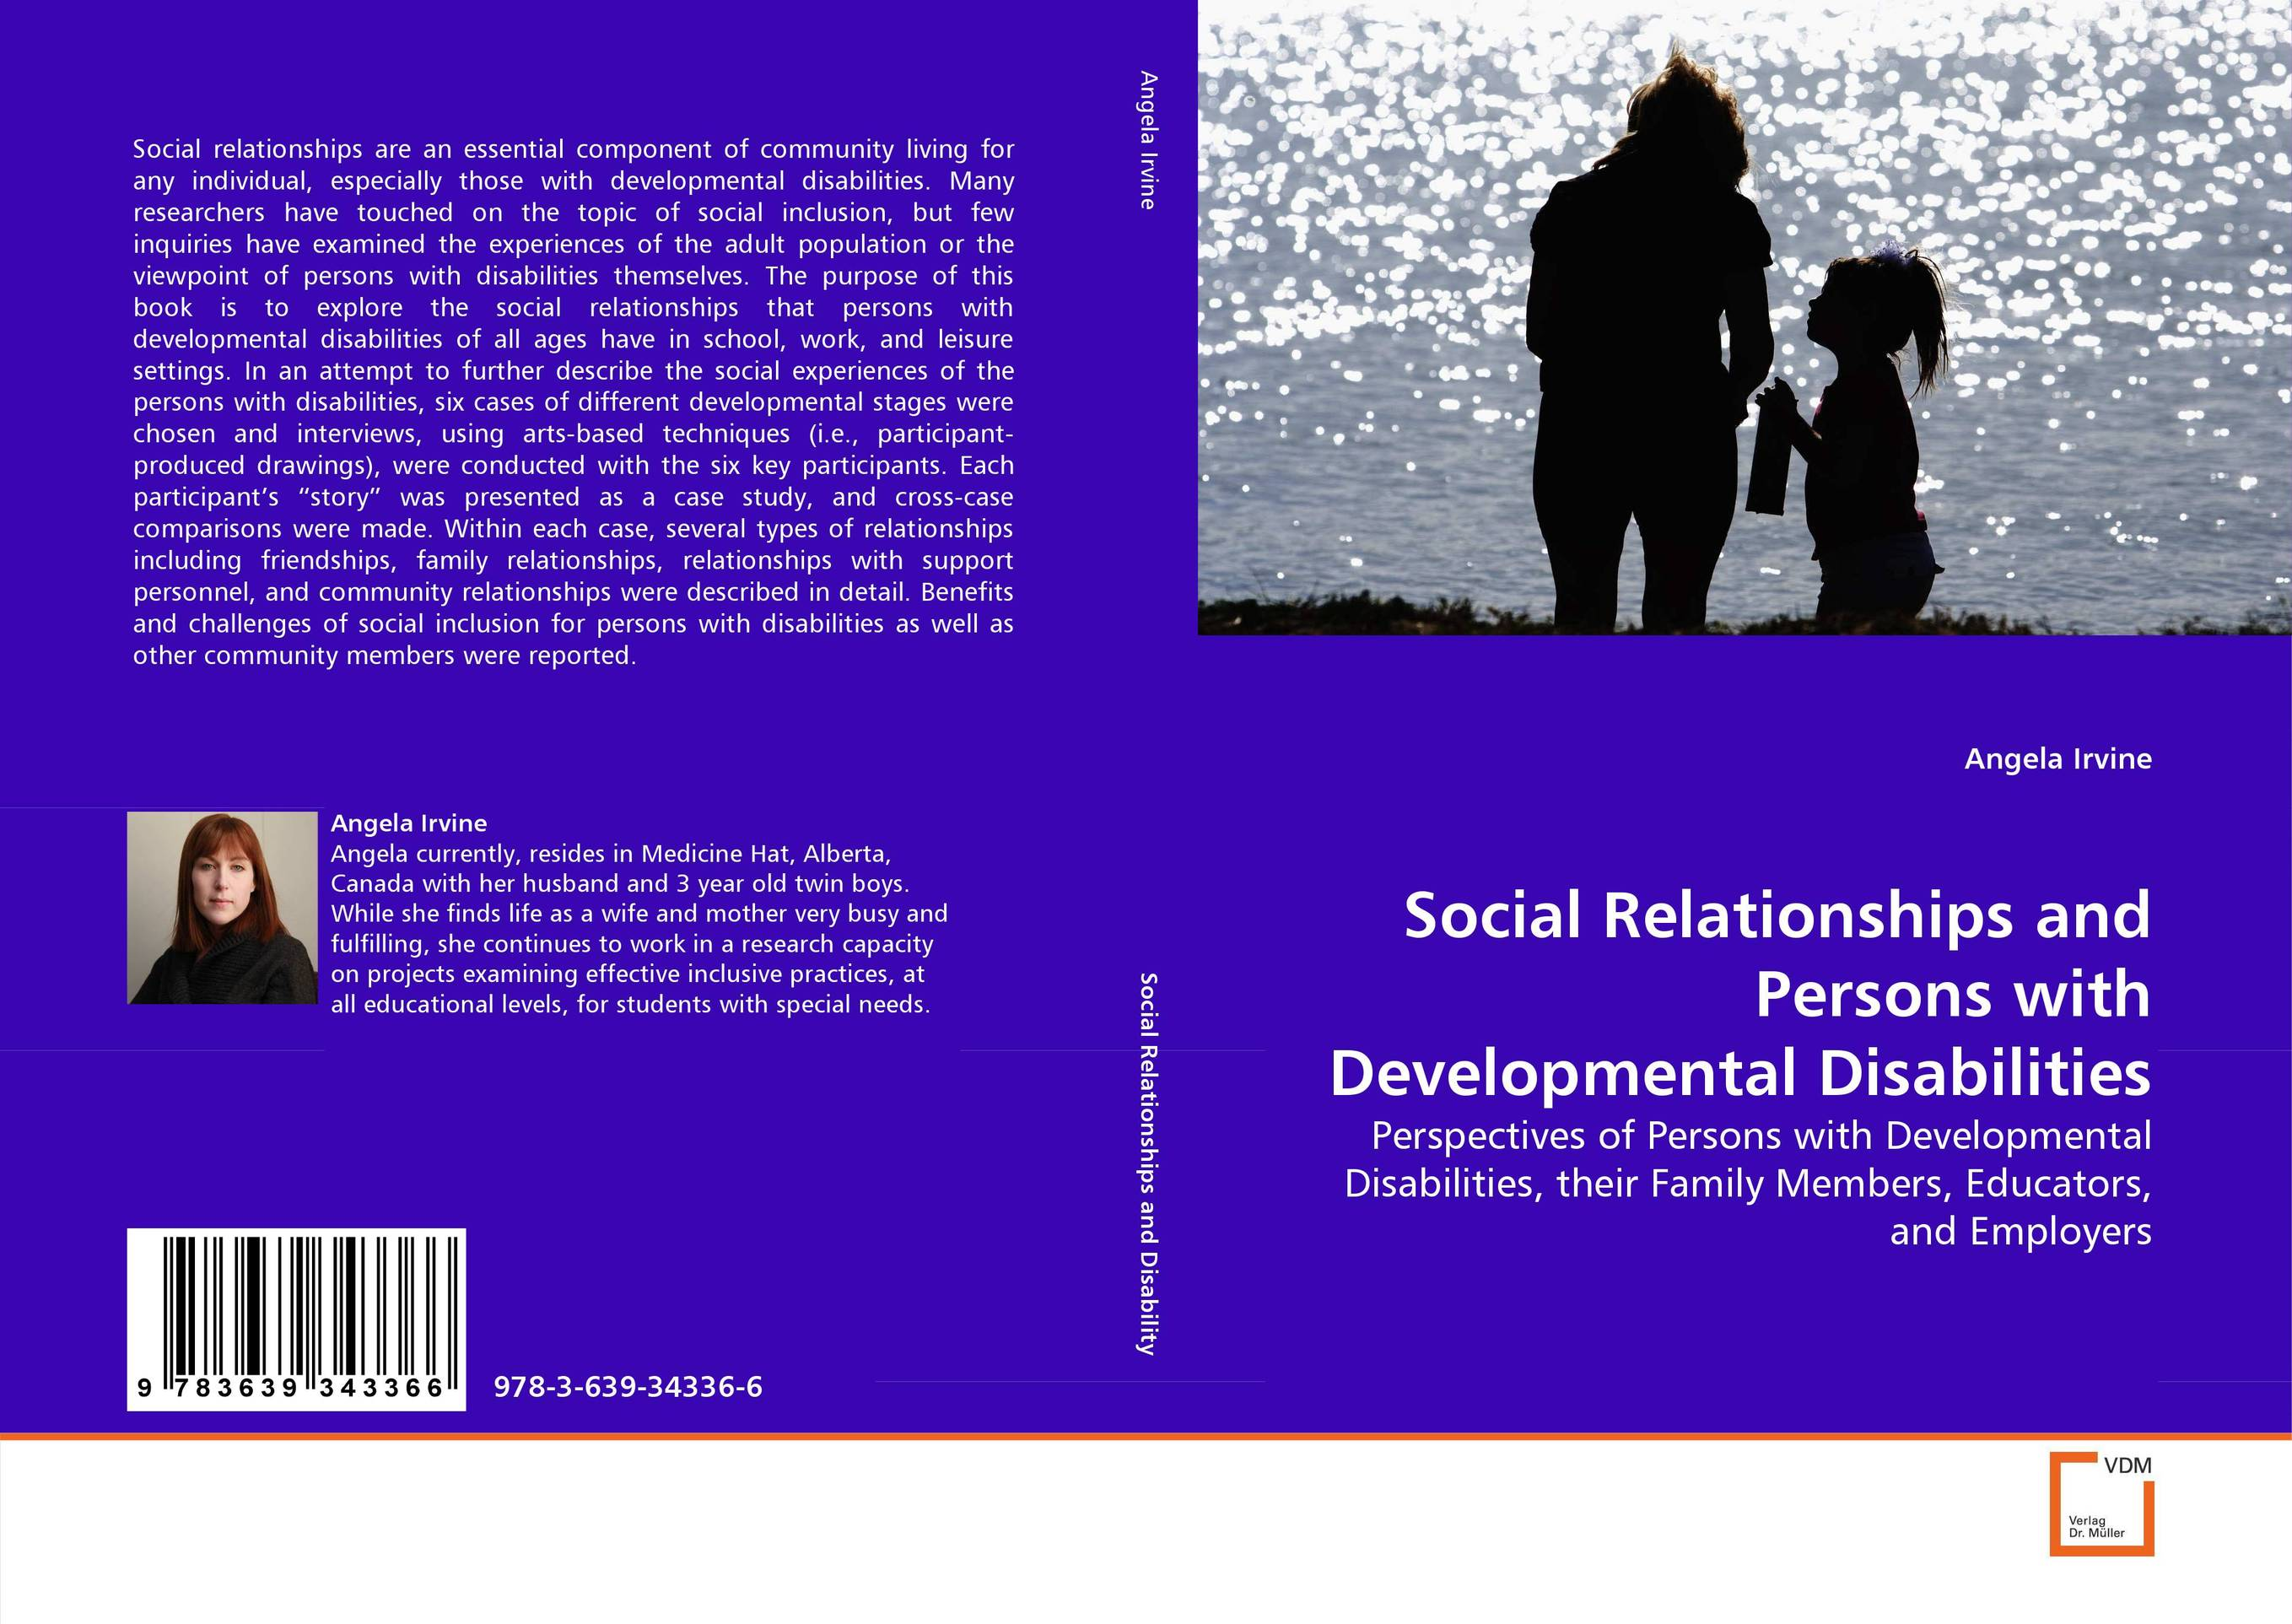 Social Relationships and Persons with Developmental Disabilities катушка для спиннинга agriculture fisheries and magic with disabilities 13